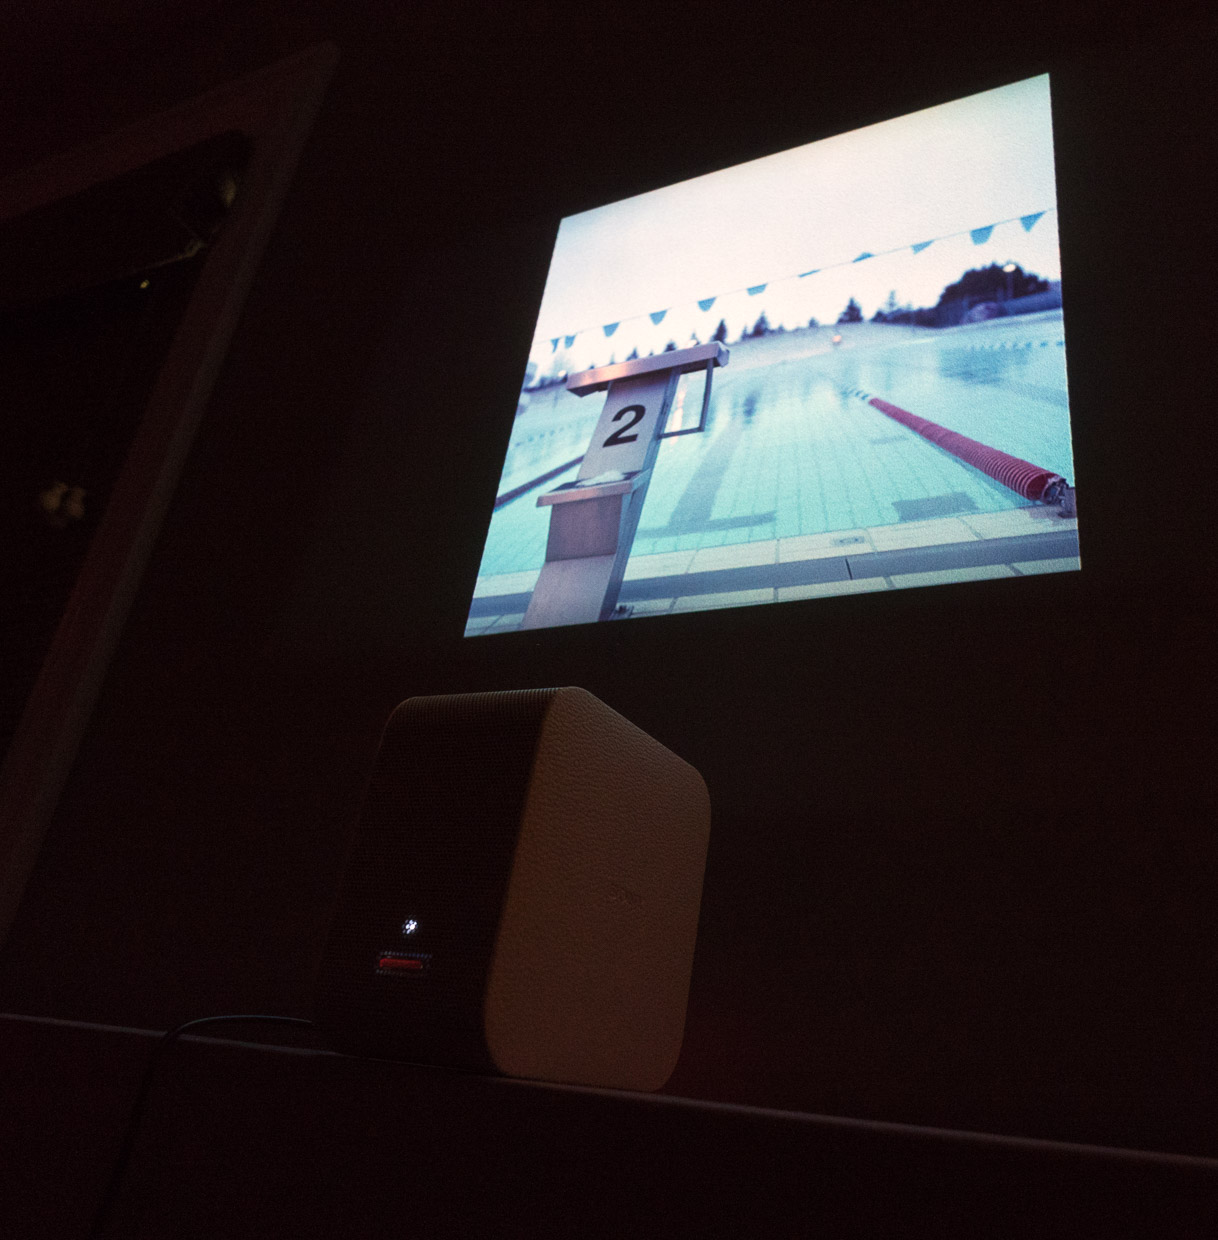 Hands-on: Sony LSPX-P1 Projector